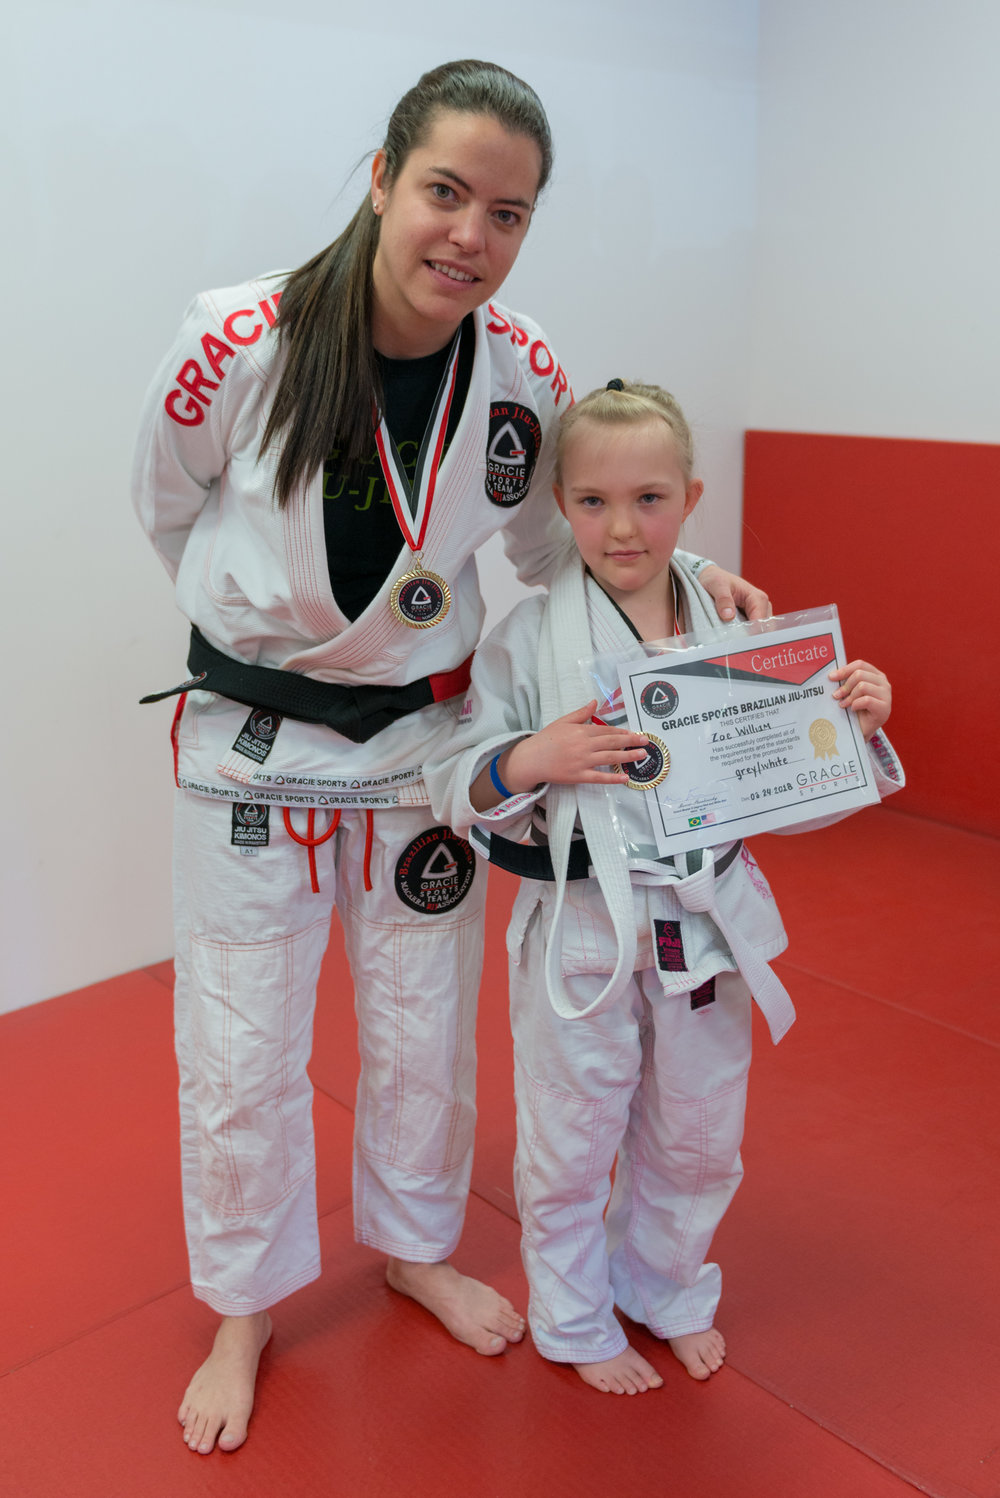 Gracie-Sports-Kids-155.jpg